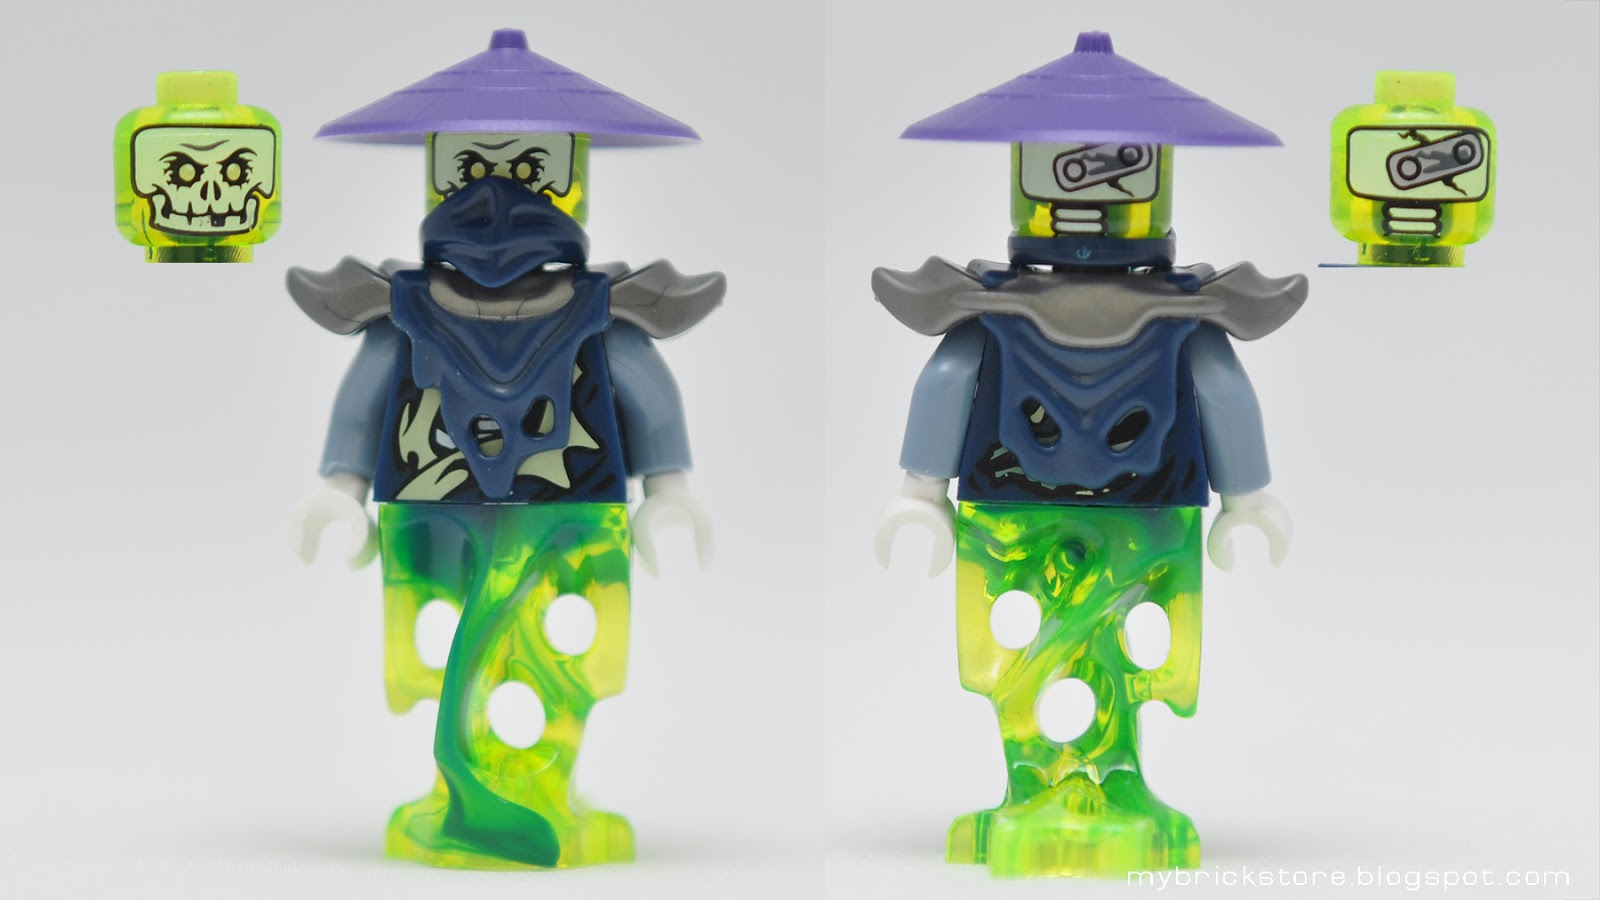 Ghoultar | Ninjago Wiki | Fandom powered by Wikia